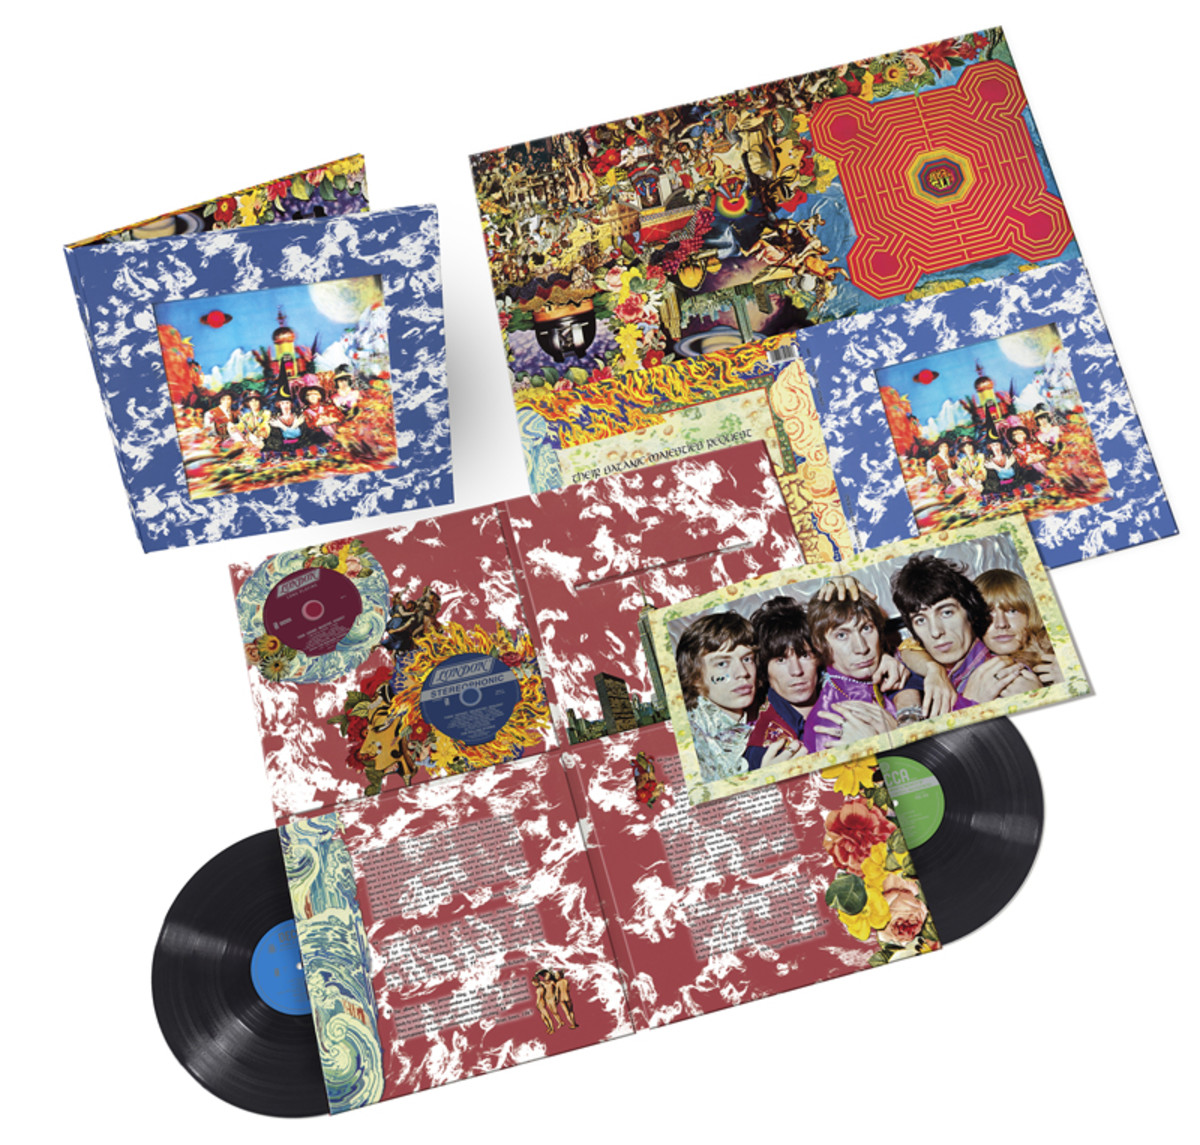 """REQUESTED REISSUE: To commemorate the 50th anniversary of """"Their Satanic Majesties Request,"""" ABKCO Music released a limited edition, deluxe double vinyl/double hybrid Super Audio CD package. The set contains both the stereo and mono versions of every song, all newly remastered by Bob Ludwig."""